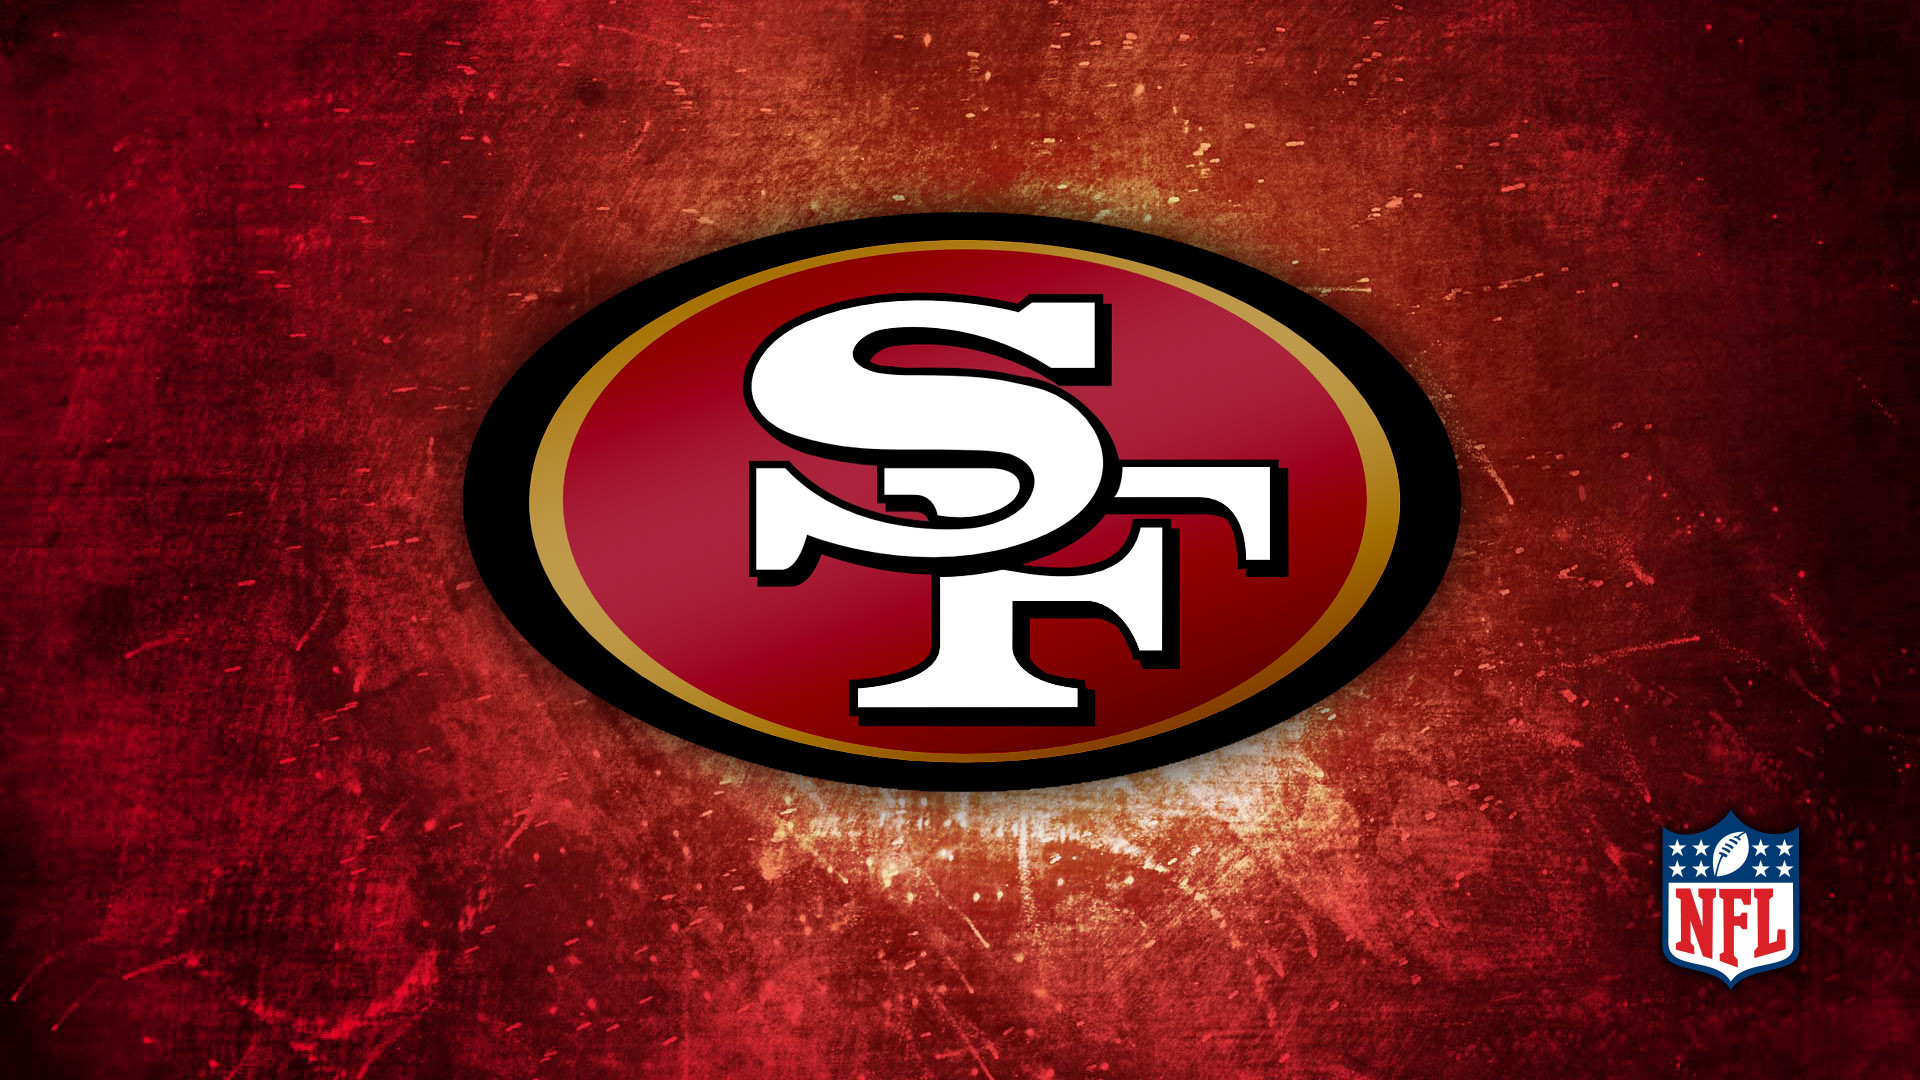 49ers Red & Gold Logo HD Image Sports / NFL Football